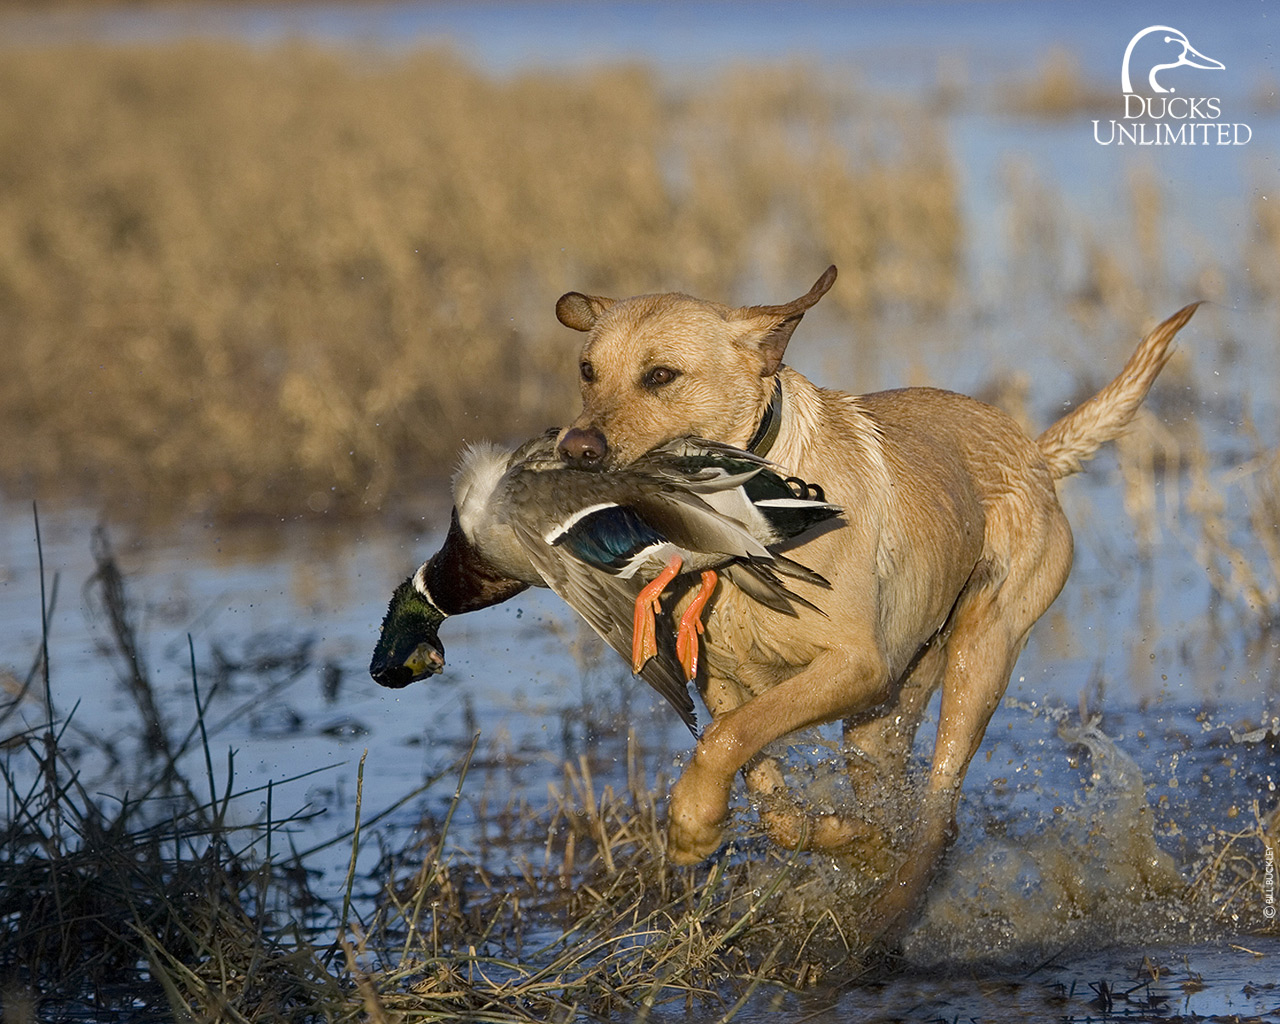 Duck Hunting Wallpaper Free Desktop Wa...